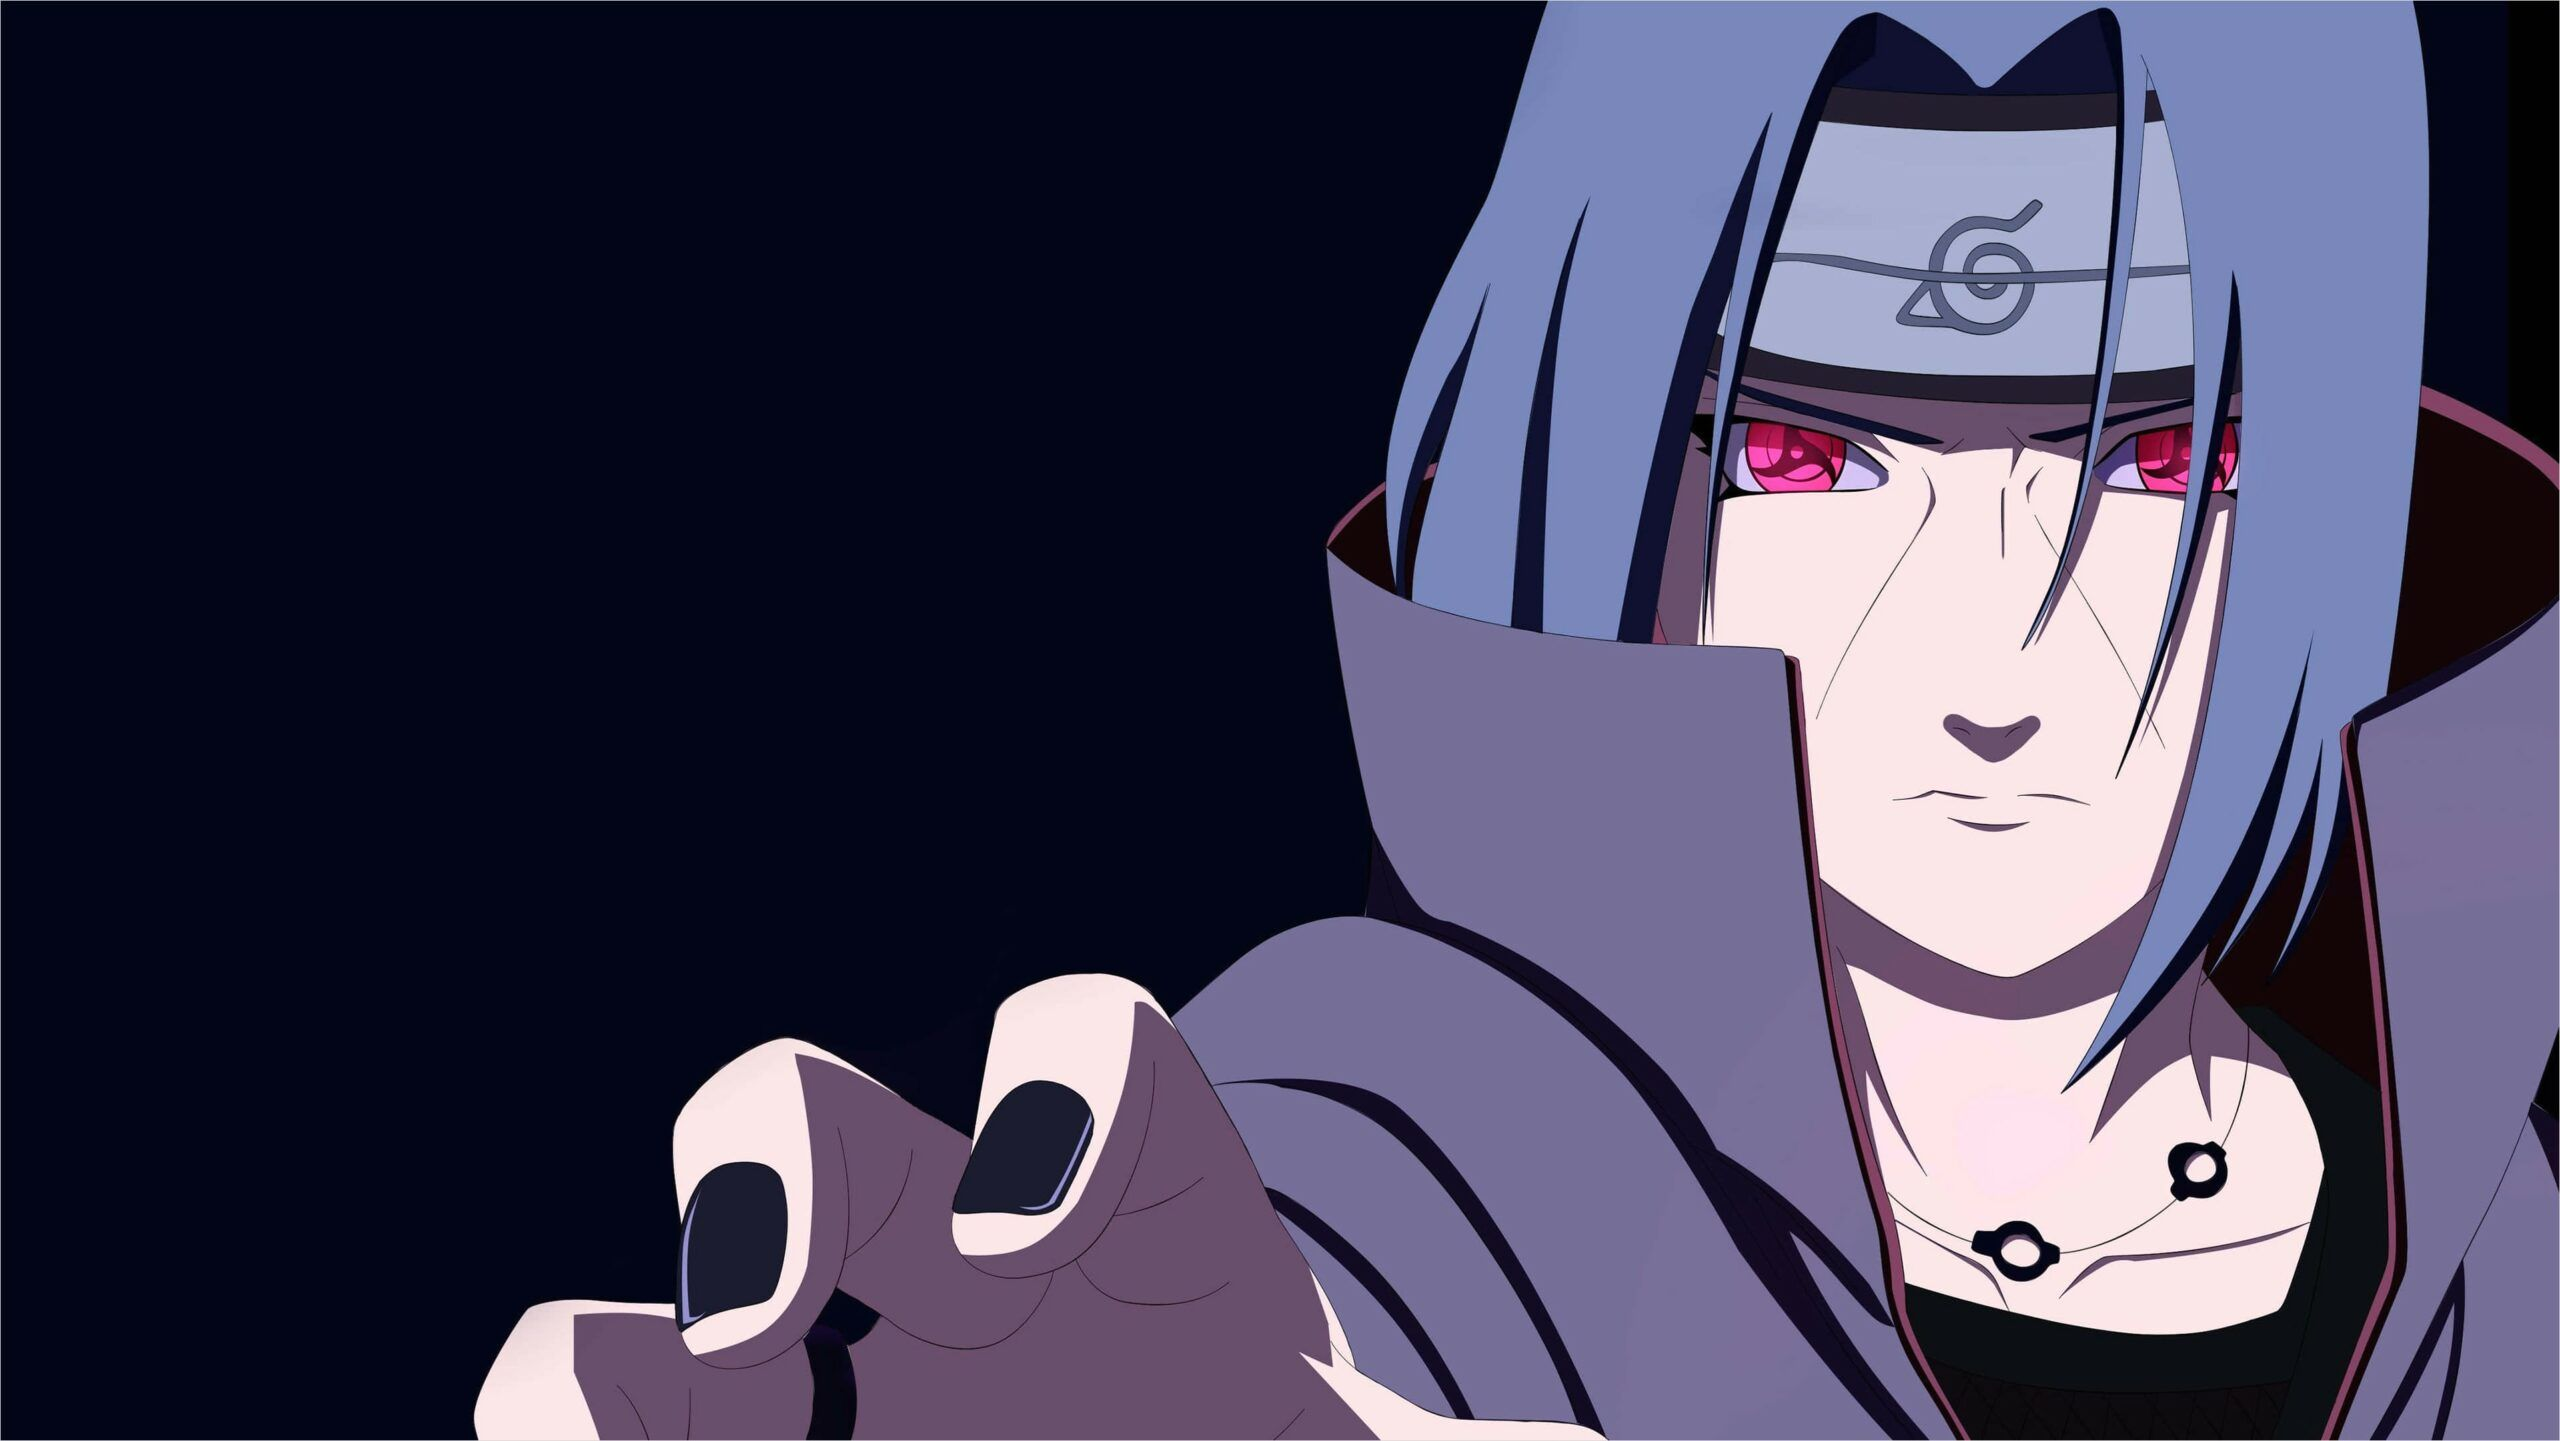 4k Naruto Itachi Wallpaper In 2020 With Images Anime Itachi